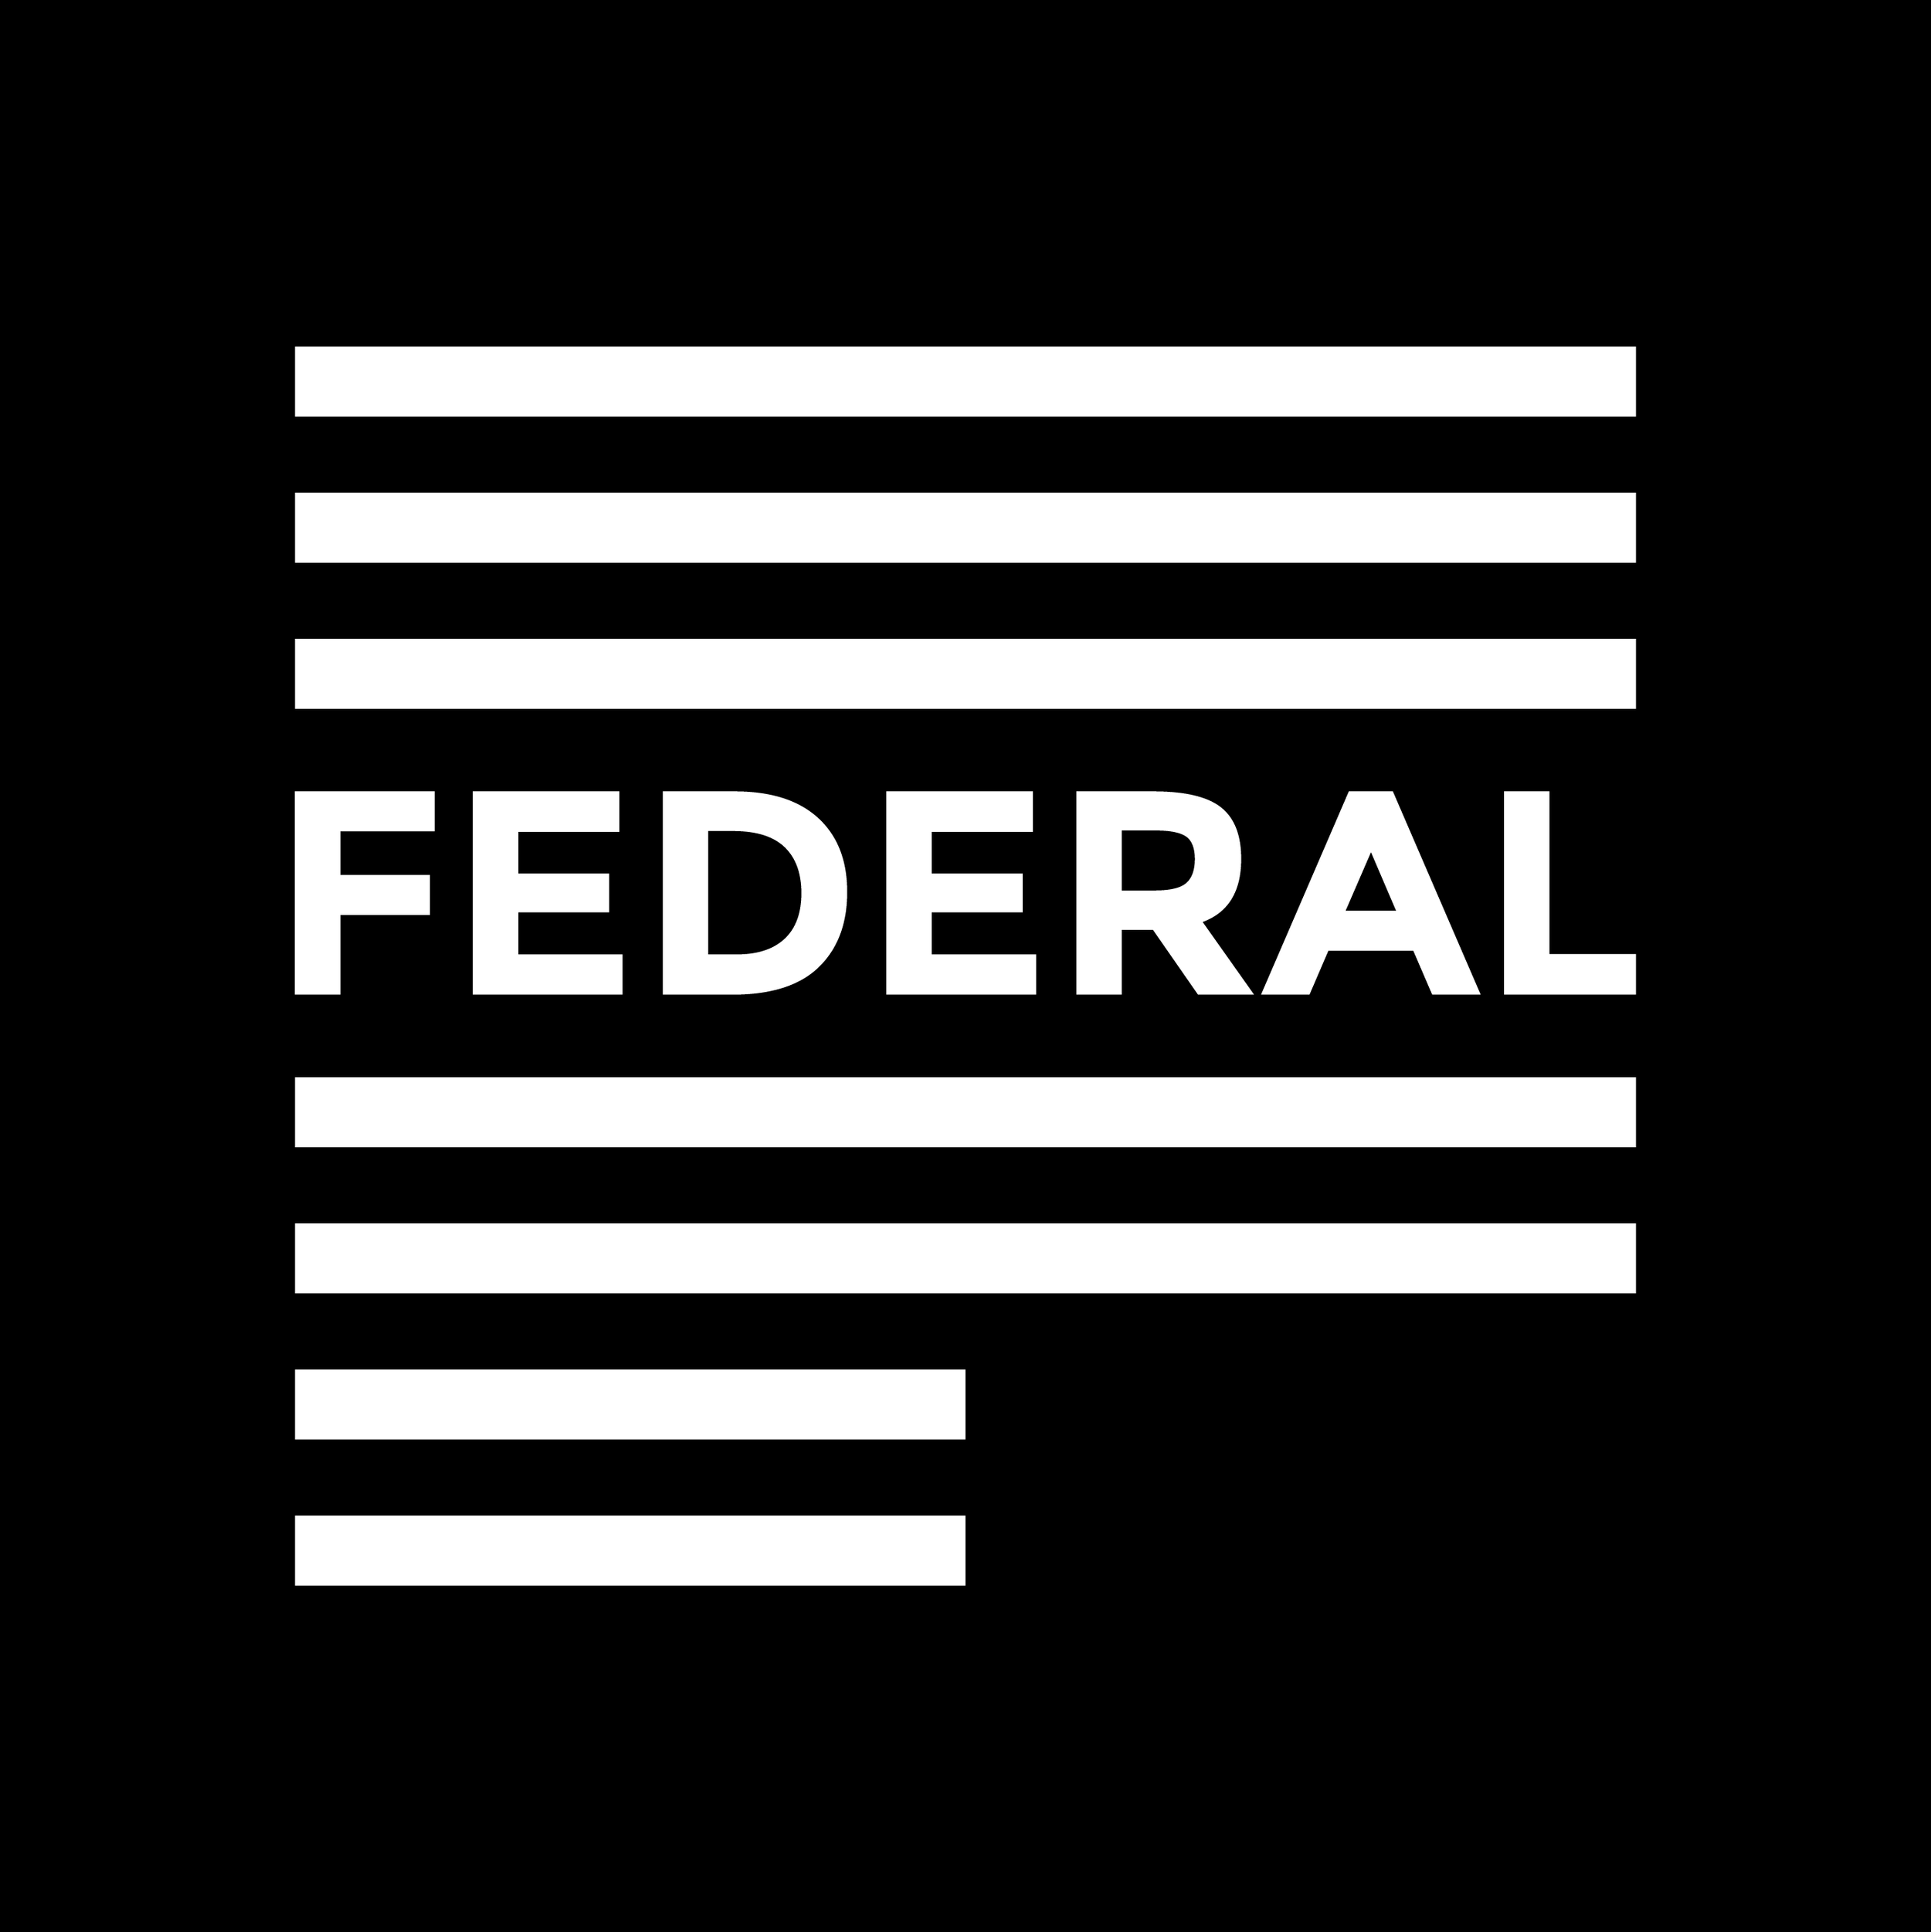 Federal Logo_White on Black.png